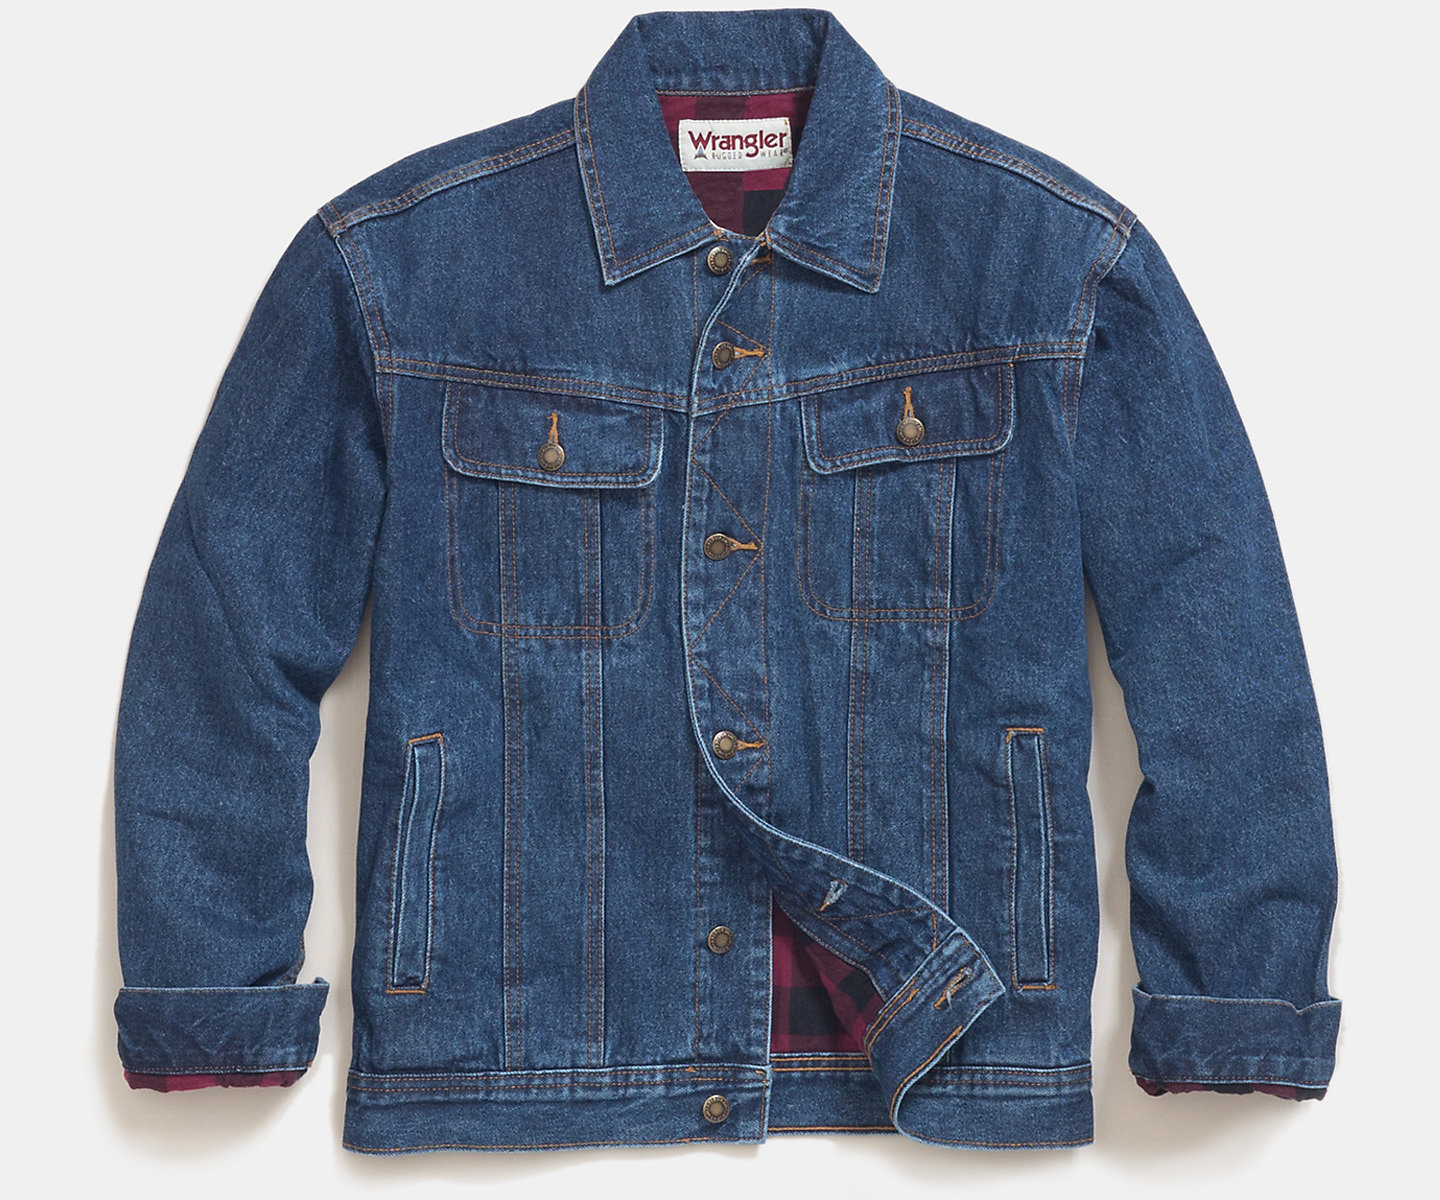 Men's Winter Fleece Lined Denim Jackets Warm Jeans Coat with Removable Hood. from $ 39 90 Prime. 4 out of 5 stars 2. Wrangler. Men's Big & Tall Western Style Lined Denim Jacket $ 63 75 Prime. 4 out of 5 stars Made By Johnny. Womens Faux Leather Motorcycle Jacket with Hoodie. from $ .